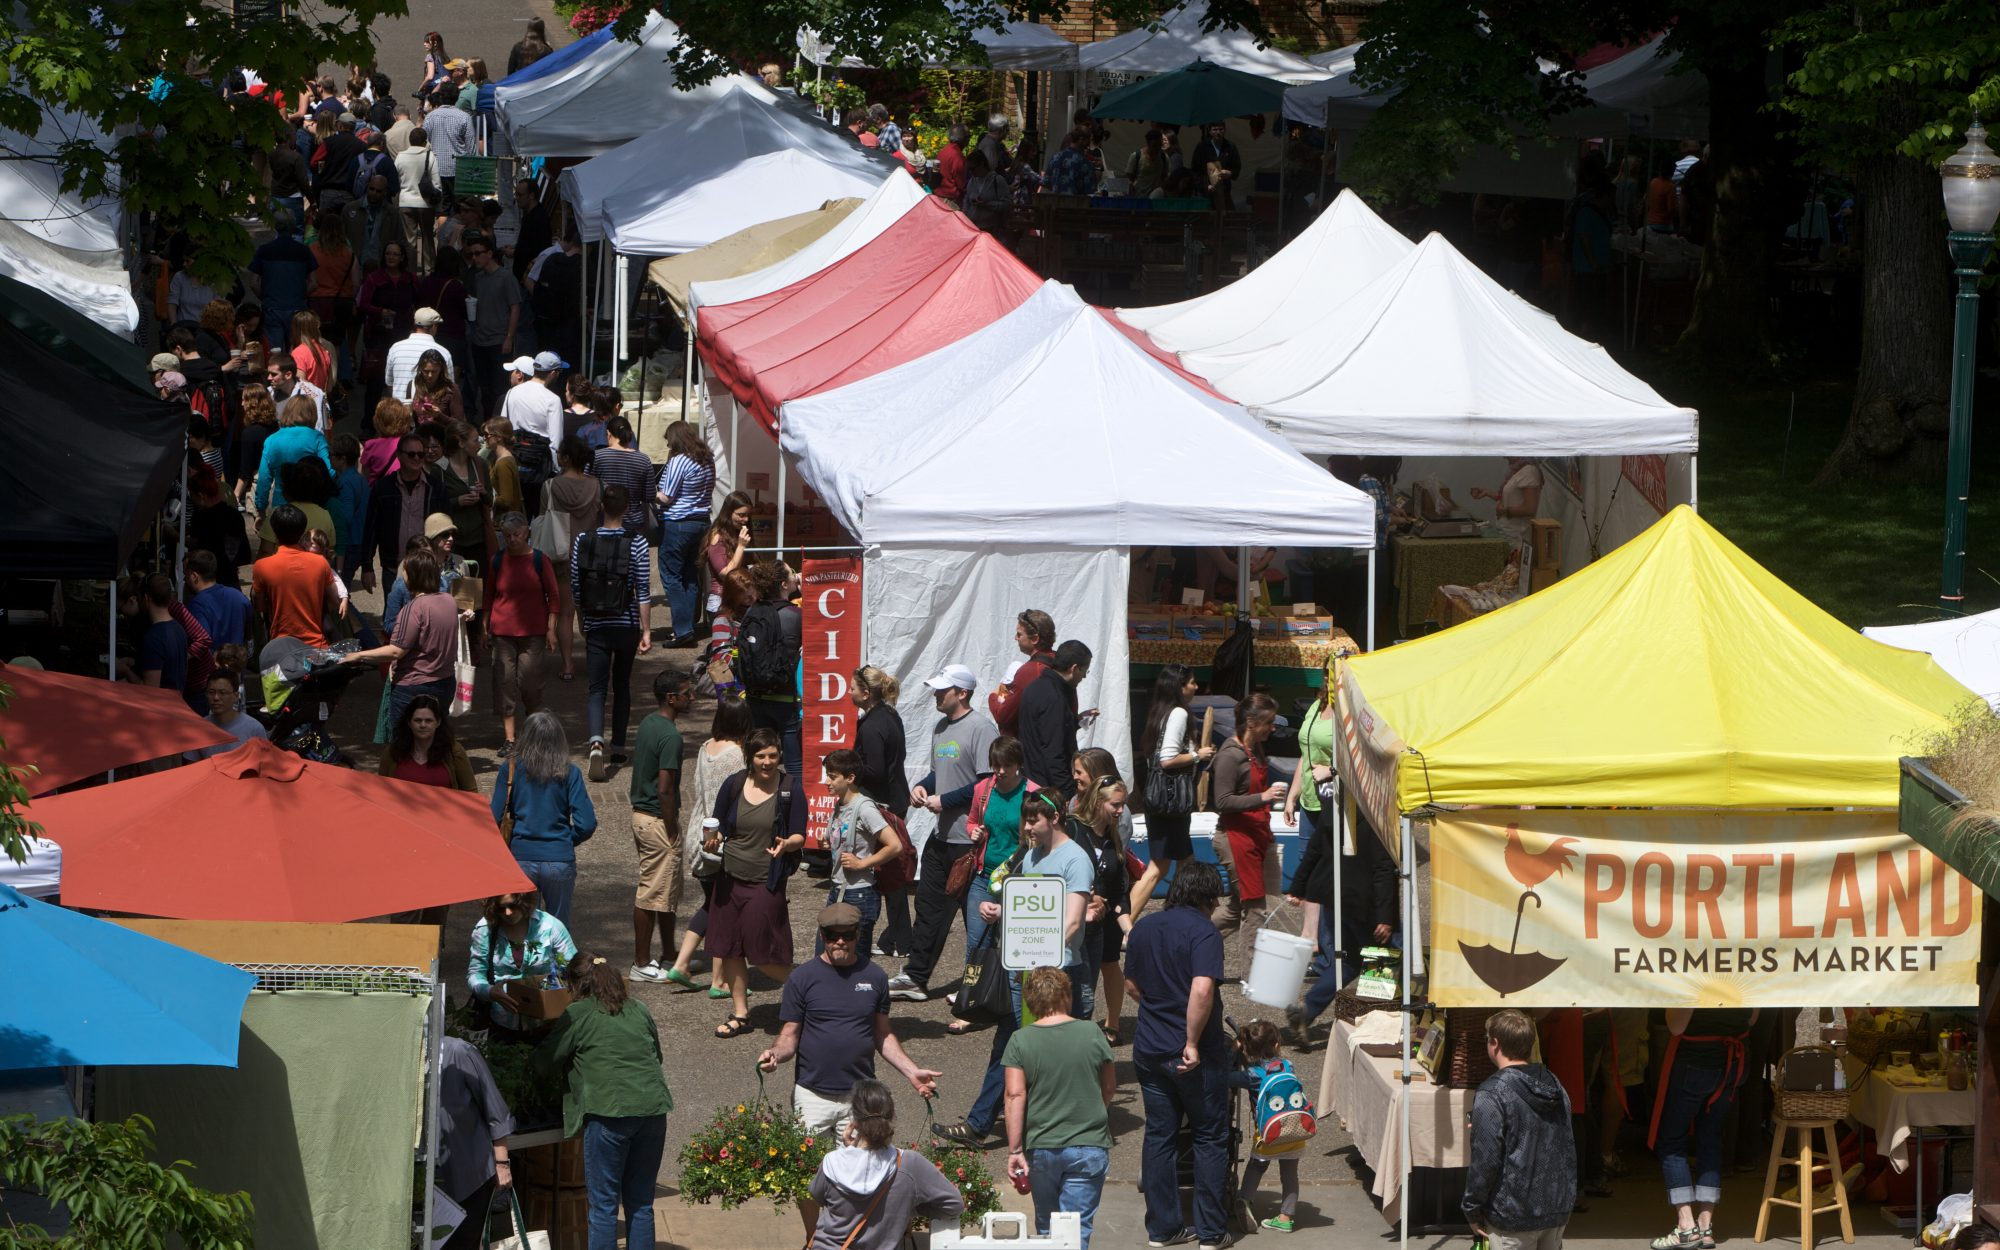 What to Buy at the Portland Farmers Market